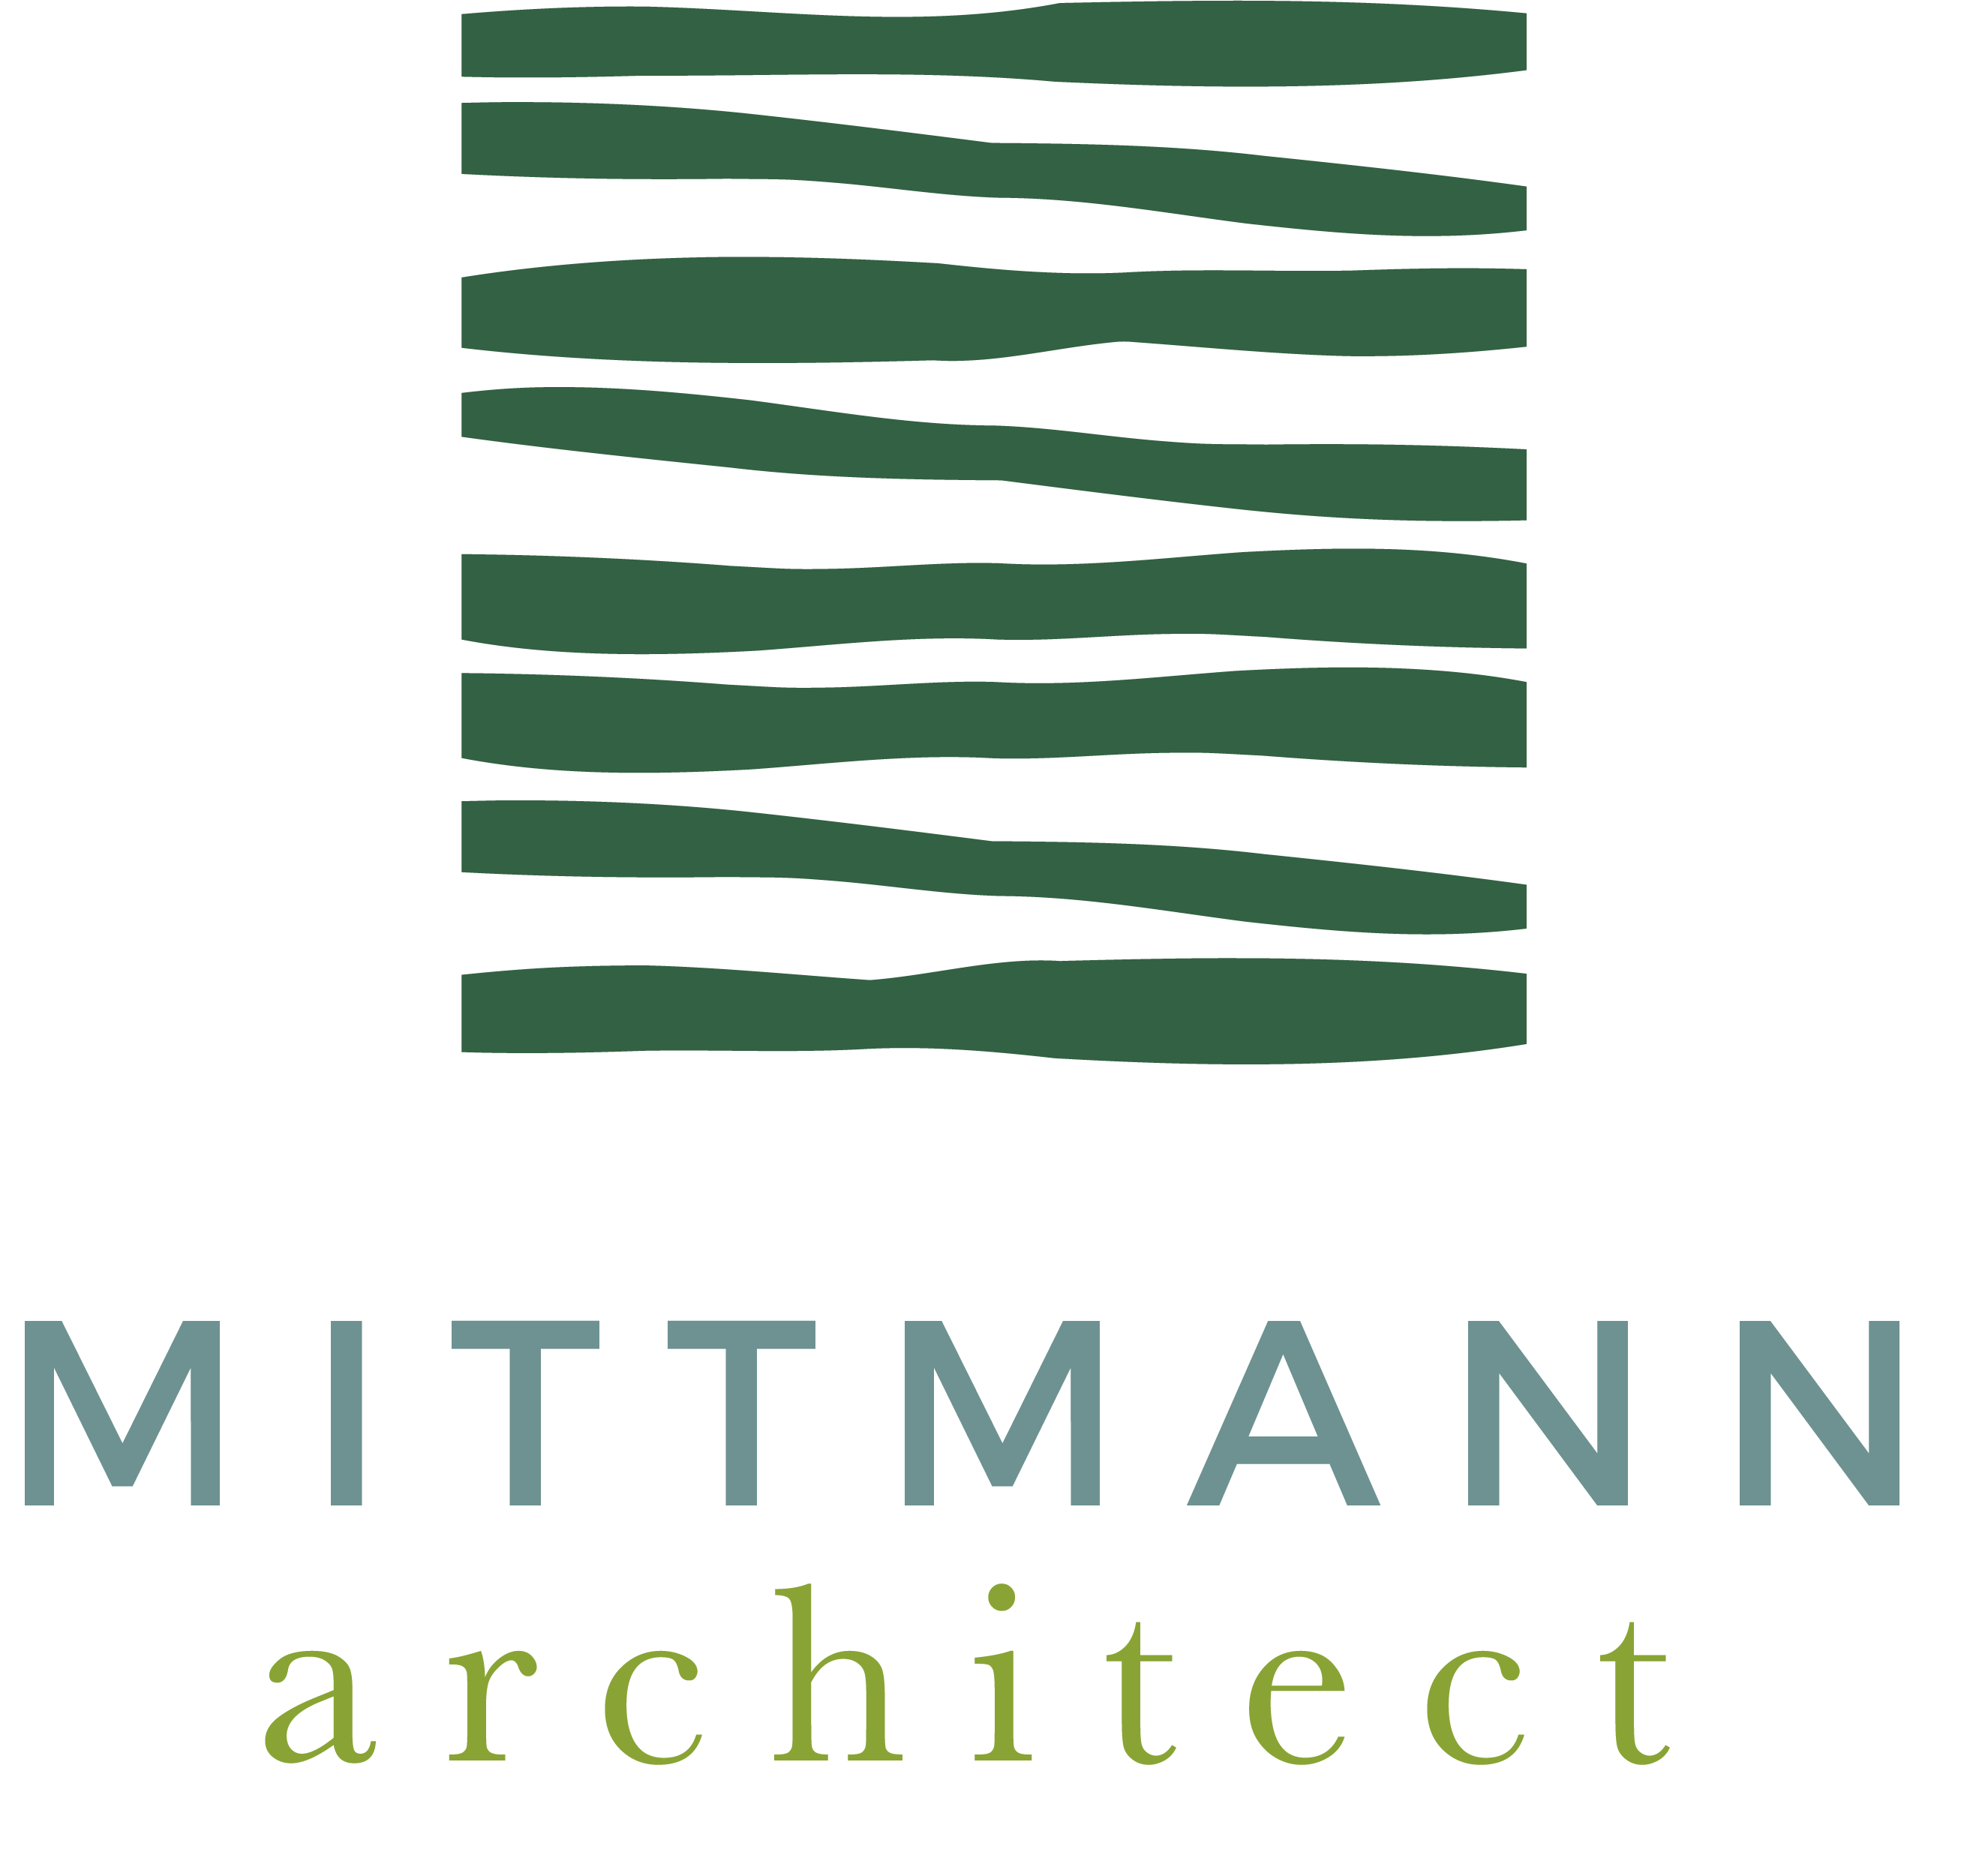 Mittmann Architect